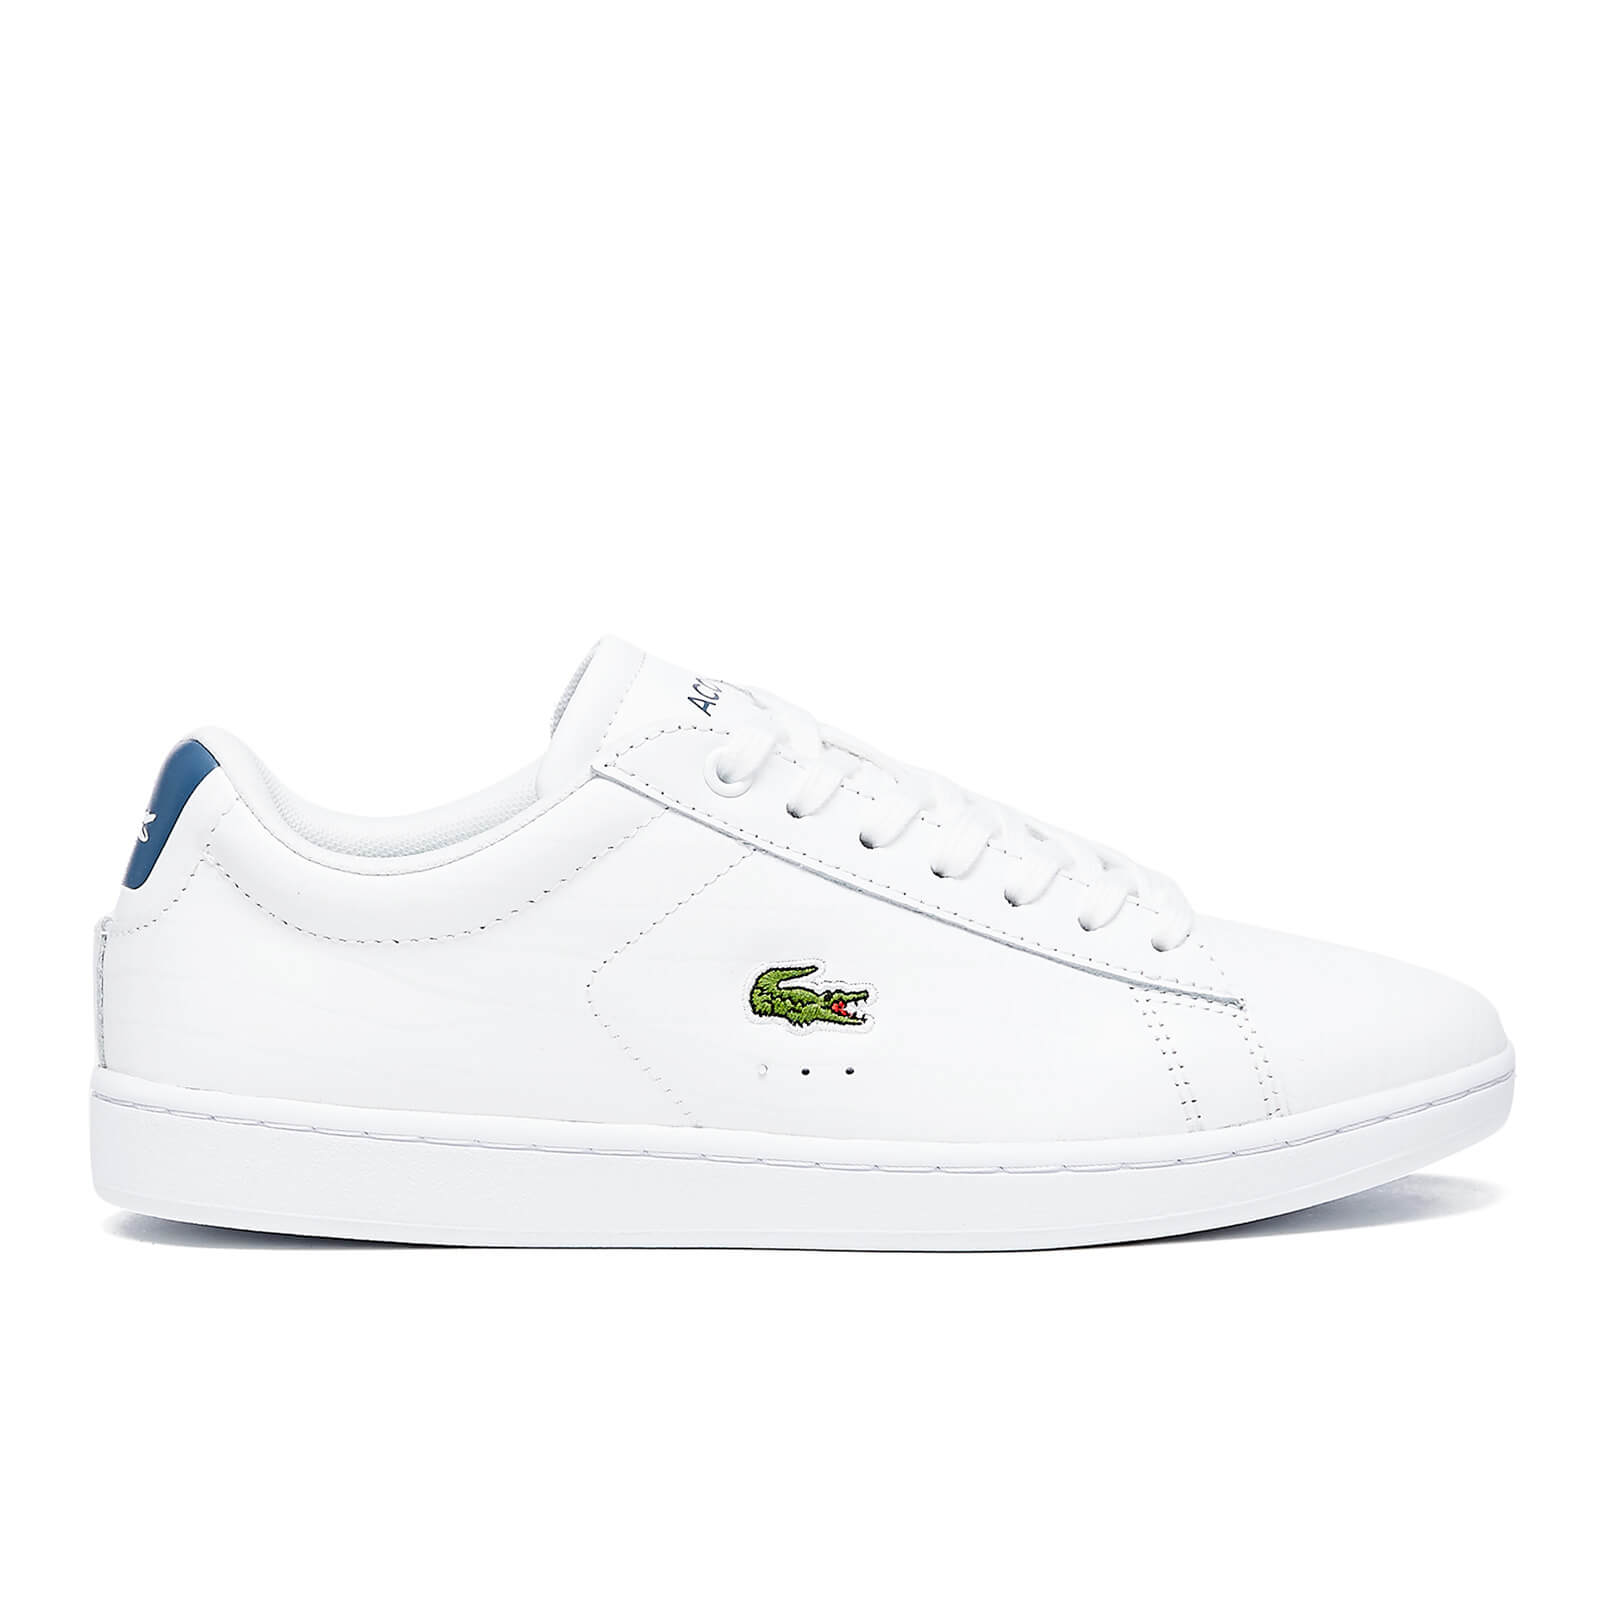 b1d0364c8 Lacoste Women s Carnaby Evo G316 8 Trainers - White Blue - Free UK ...